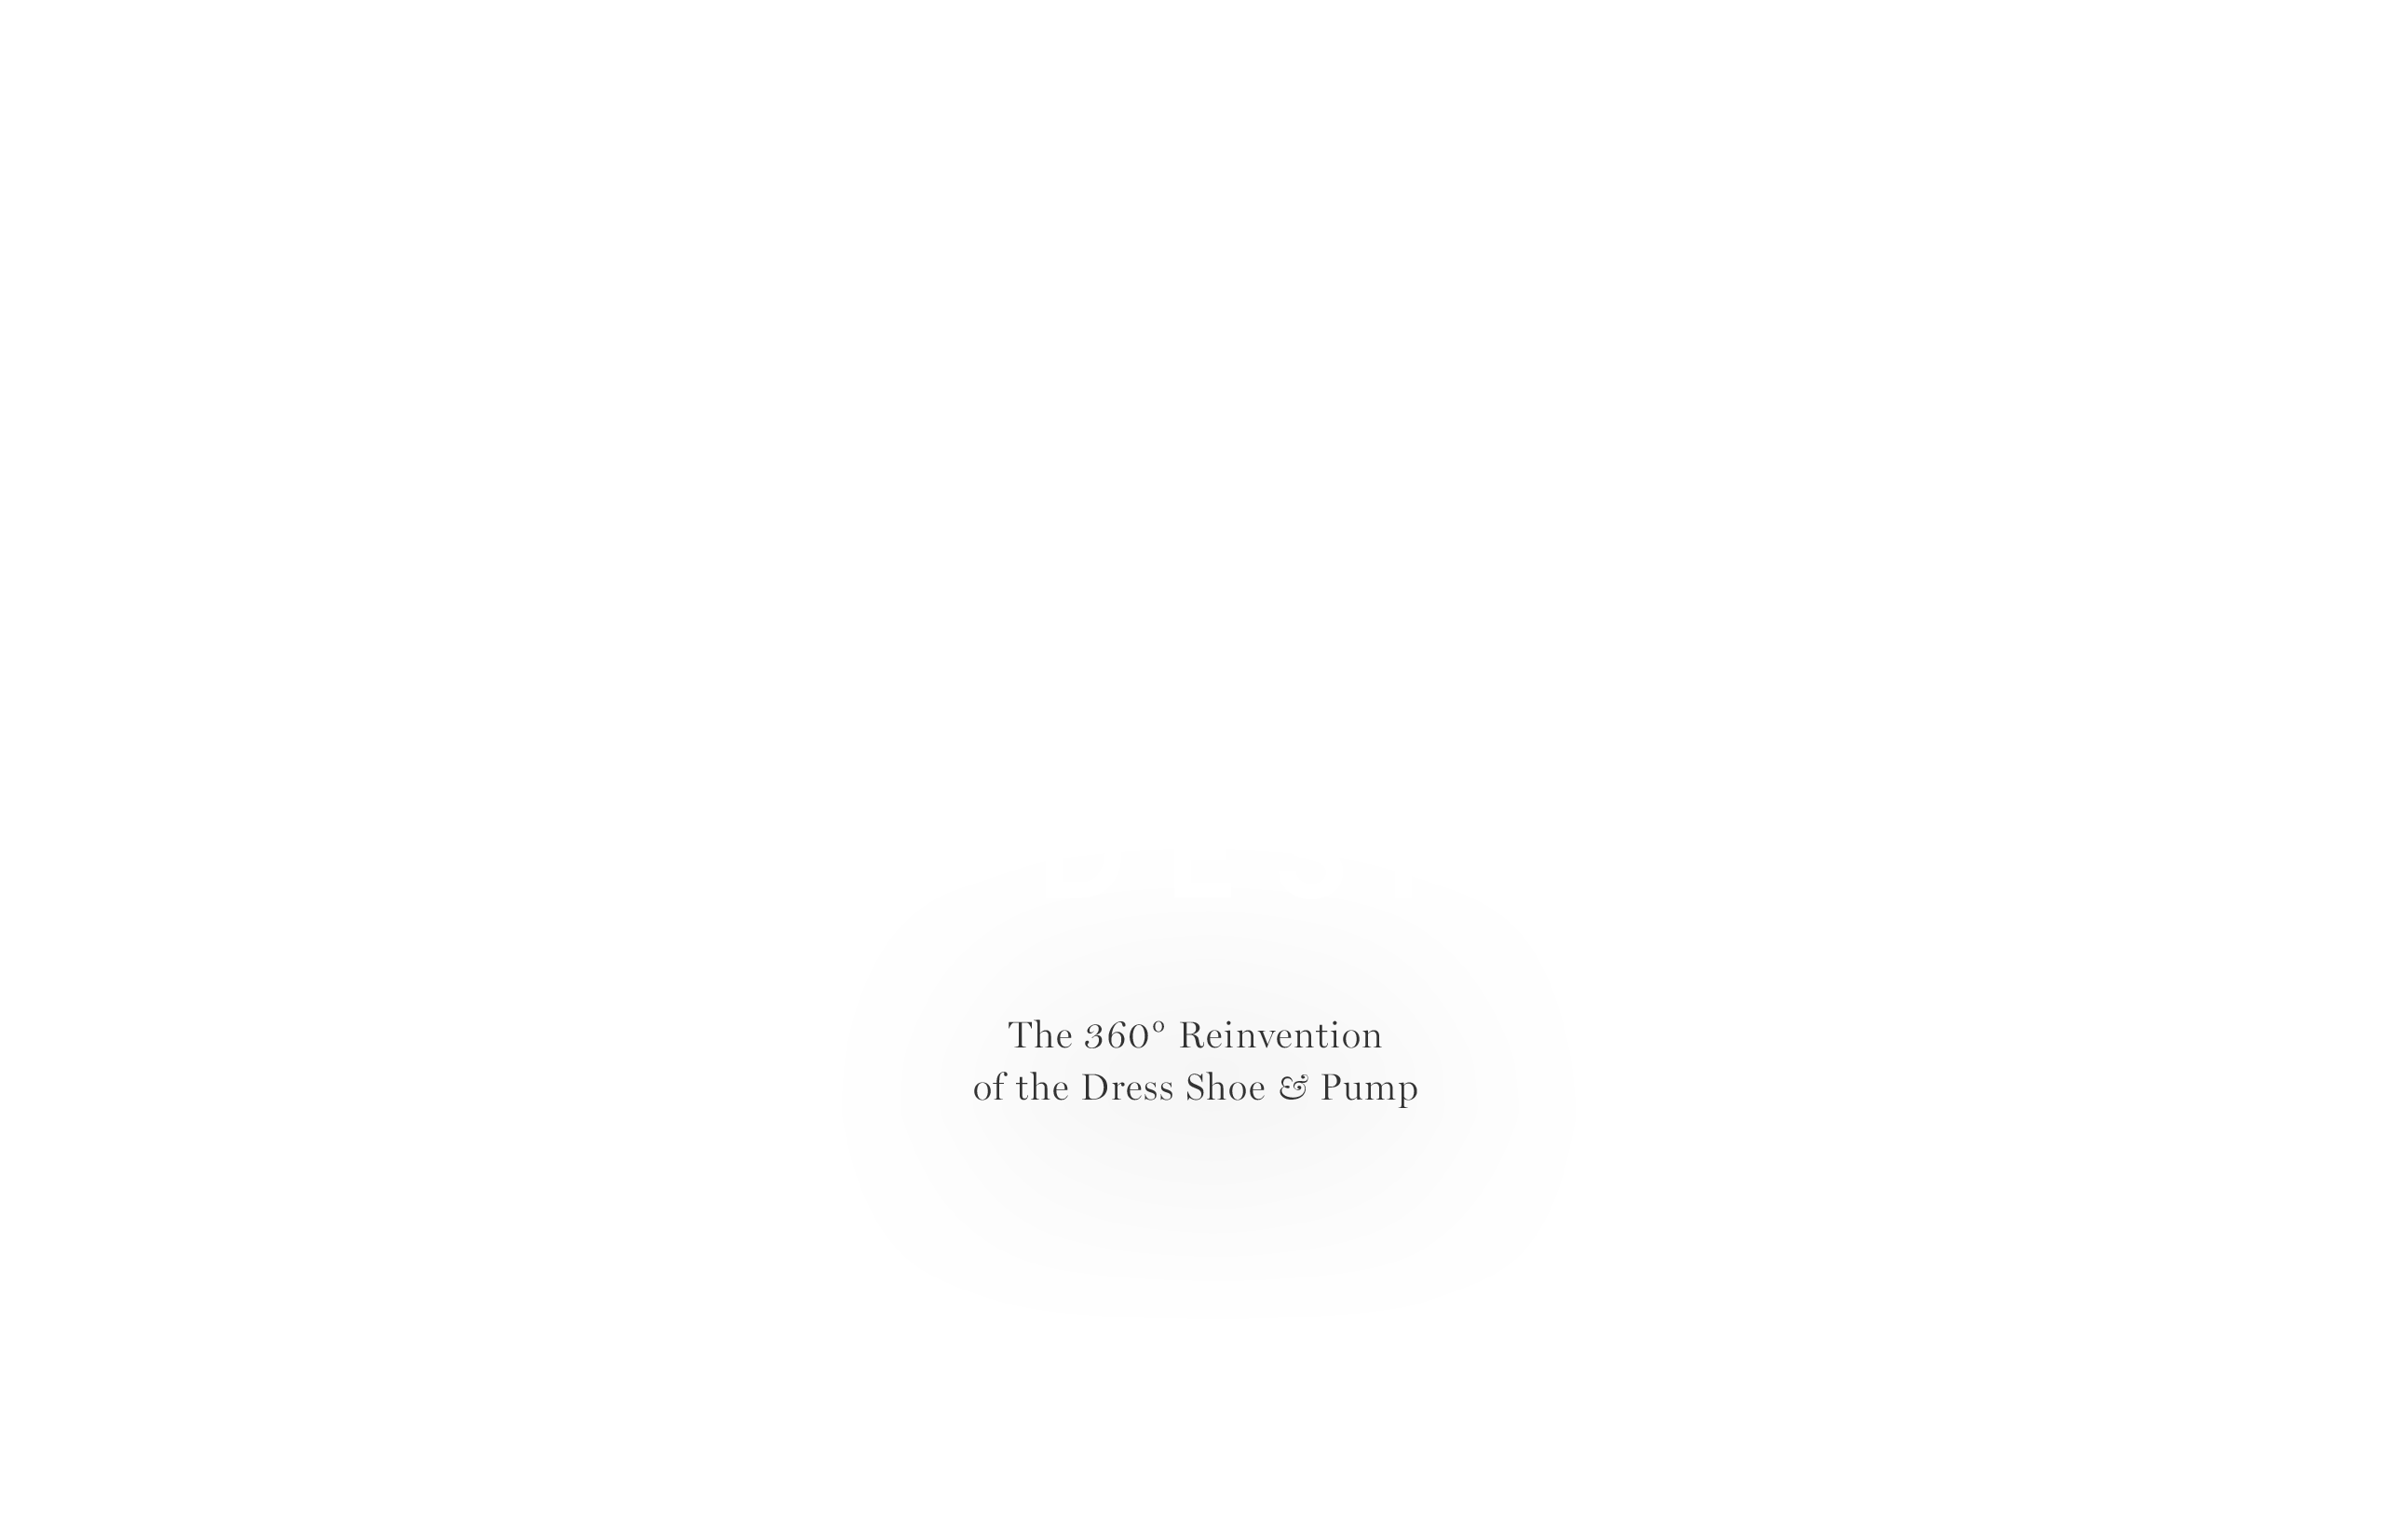 GRANDREVOLUTION: Revolutionary By Design. The 360 Reinvention of the Dress Shoe and Pump